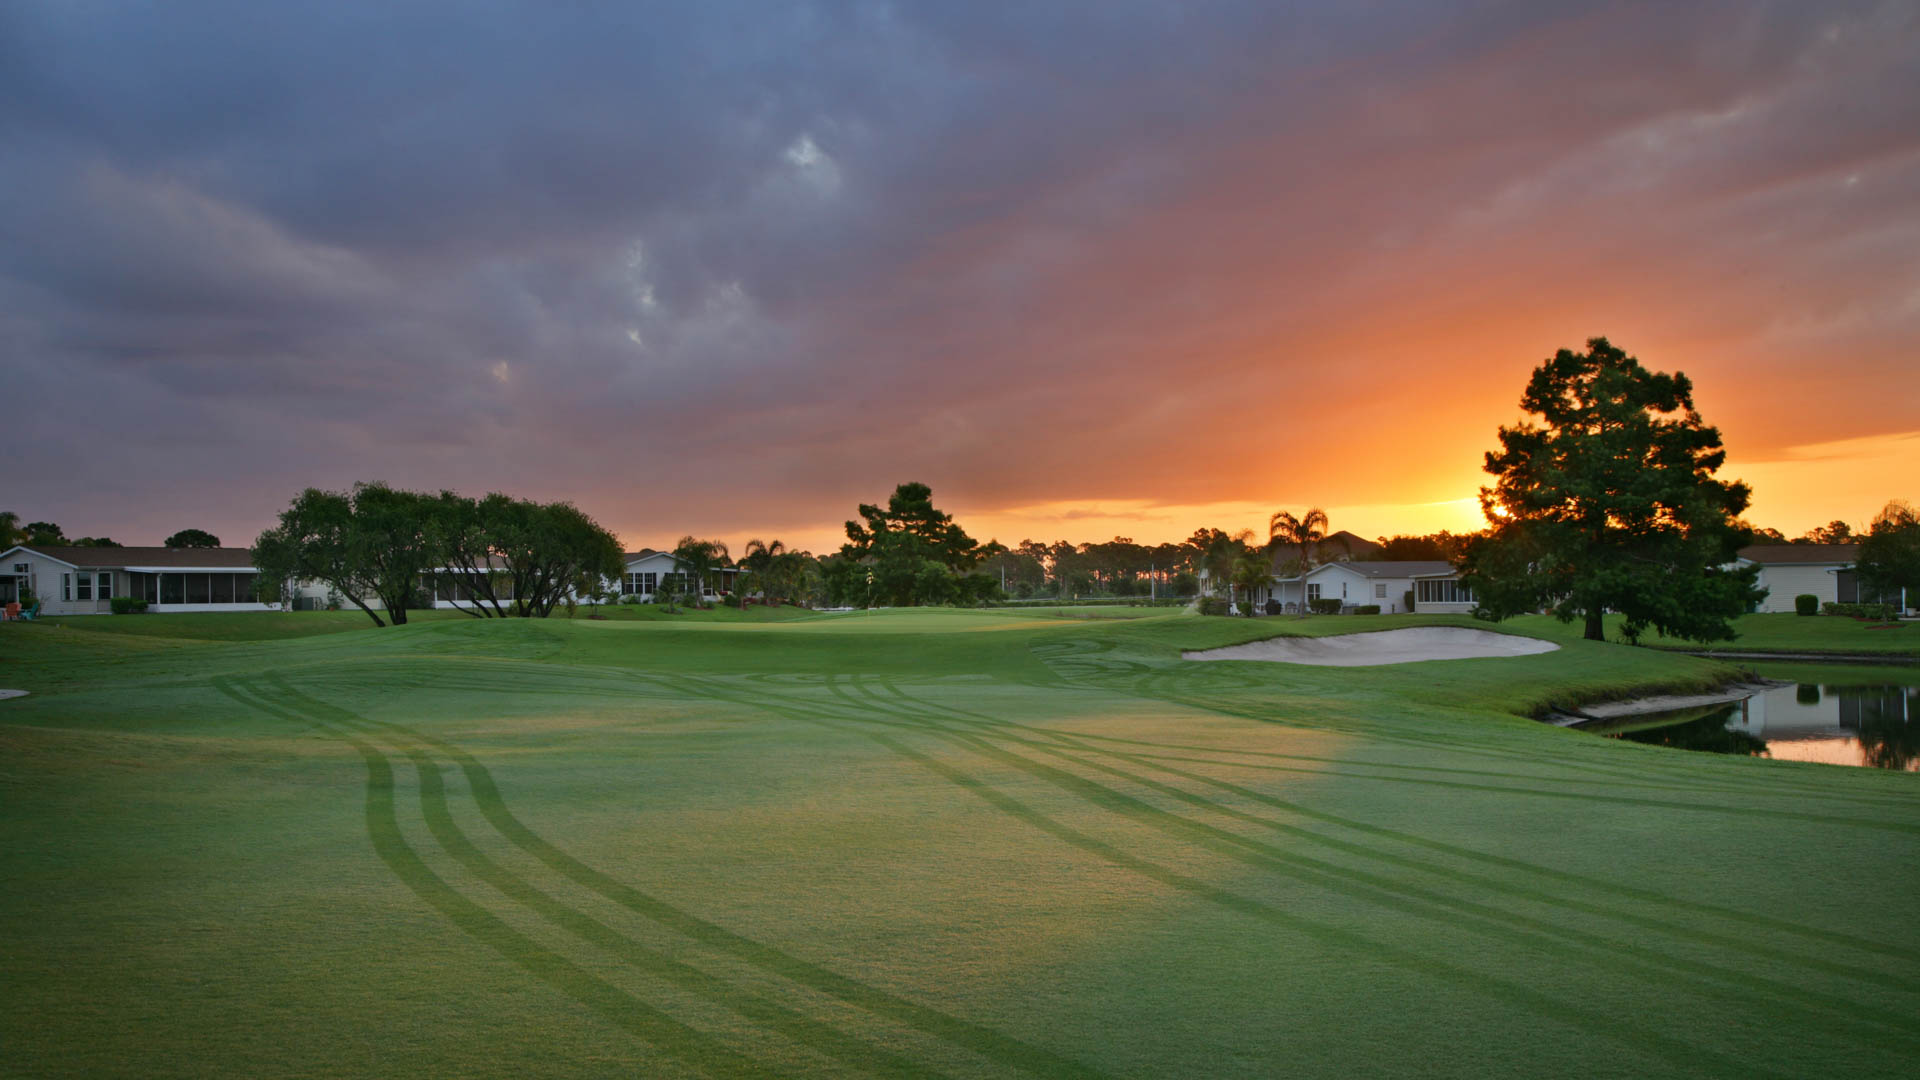 Savanna Club 55+ Manufactured Homes Community Golf Course Morning in St. Lucie, FL